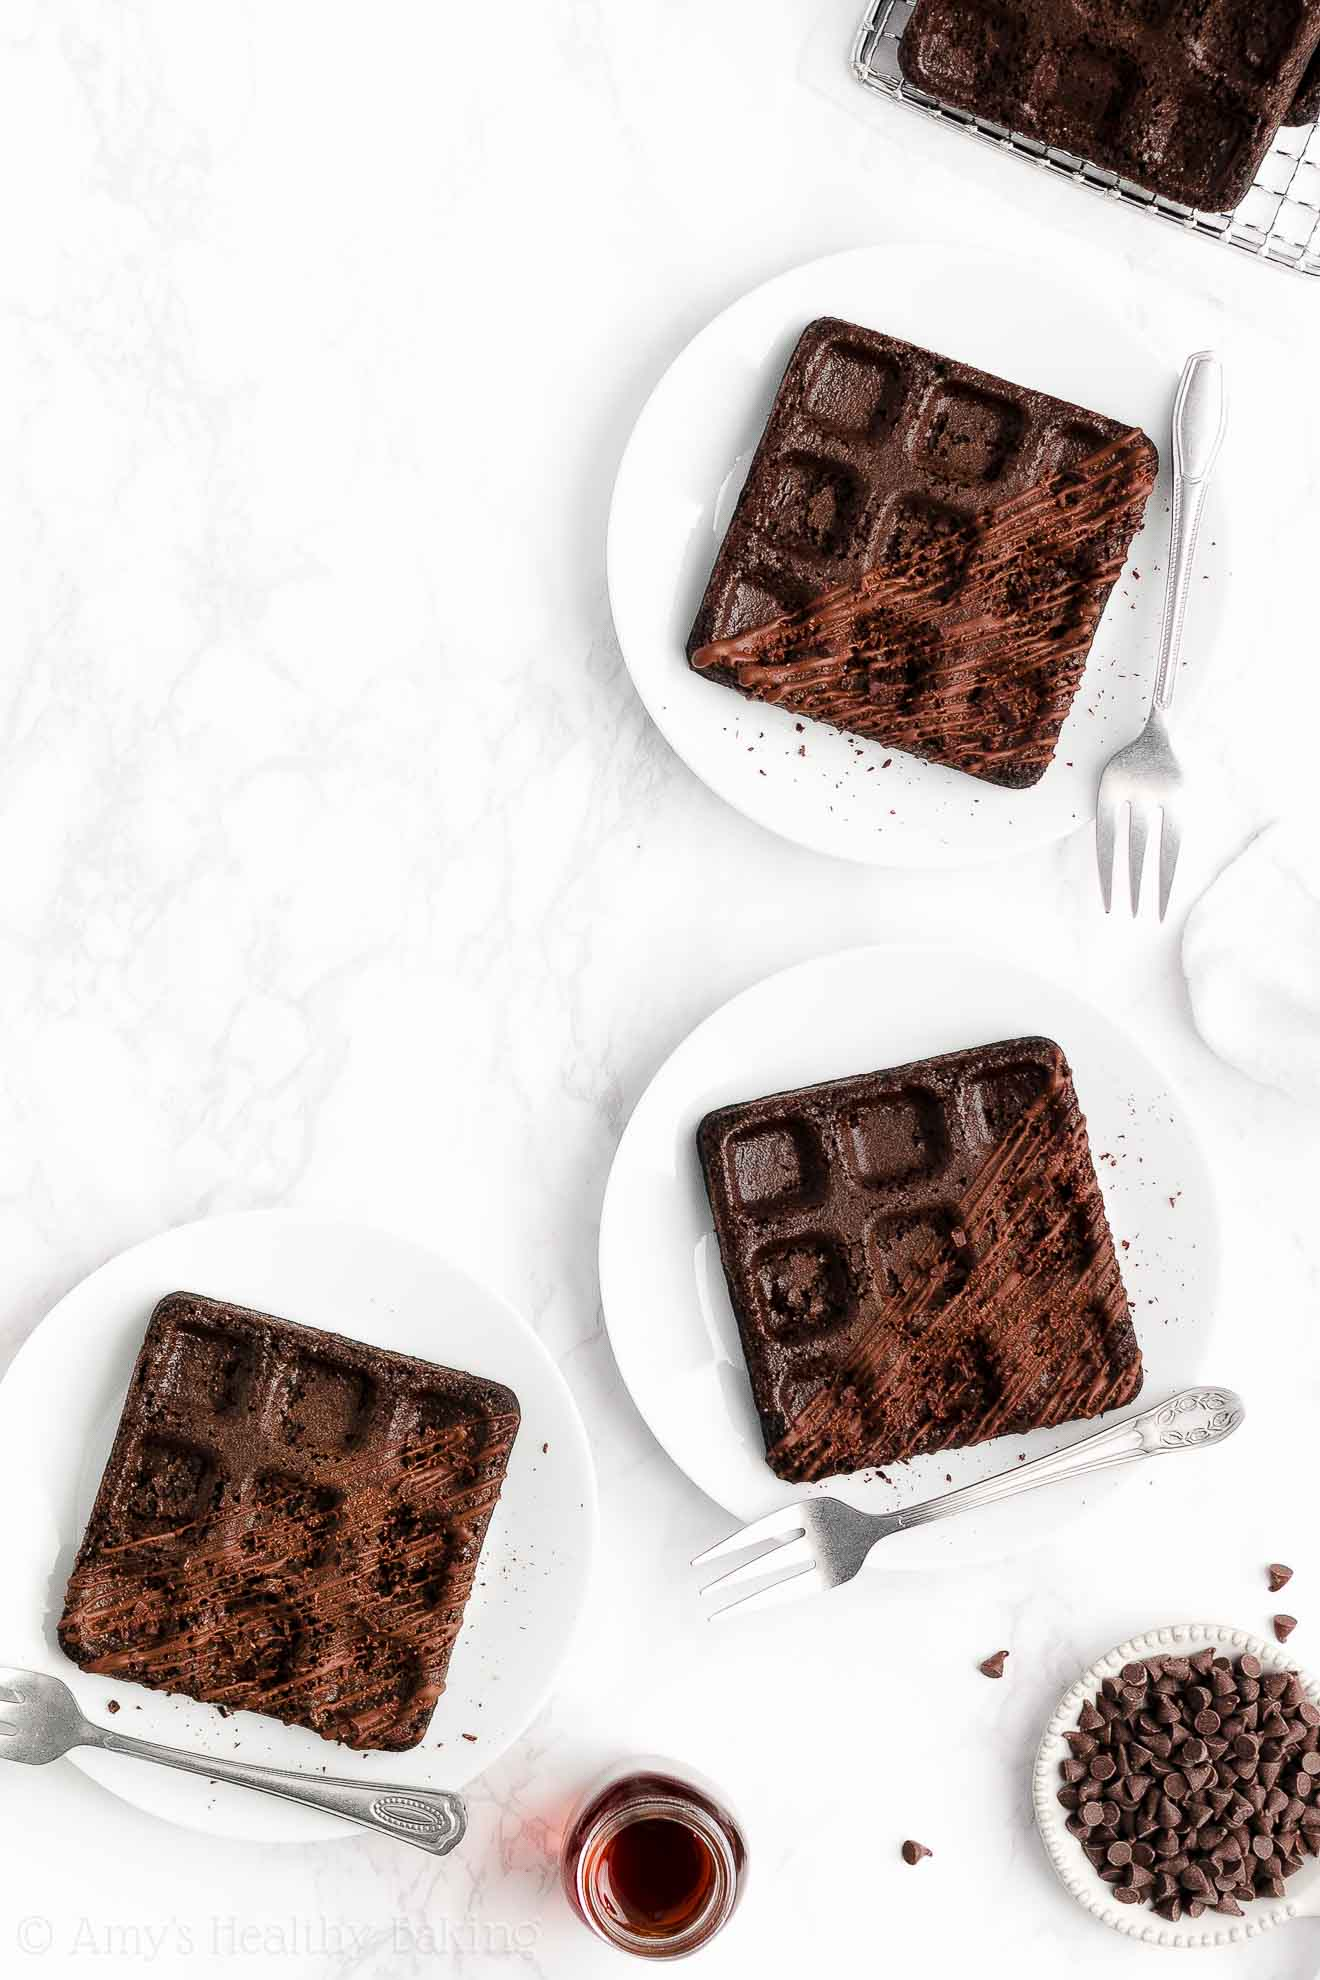 ULTIMATE Healthy Baked Crispy Fluffy Whole Wheat Dark Chocolate Waffles